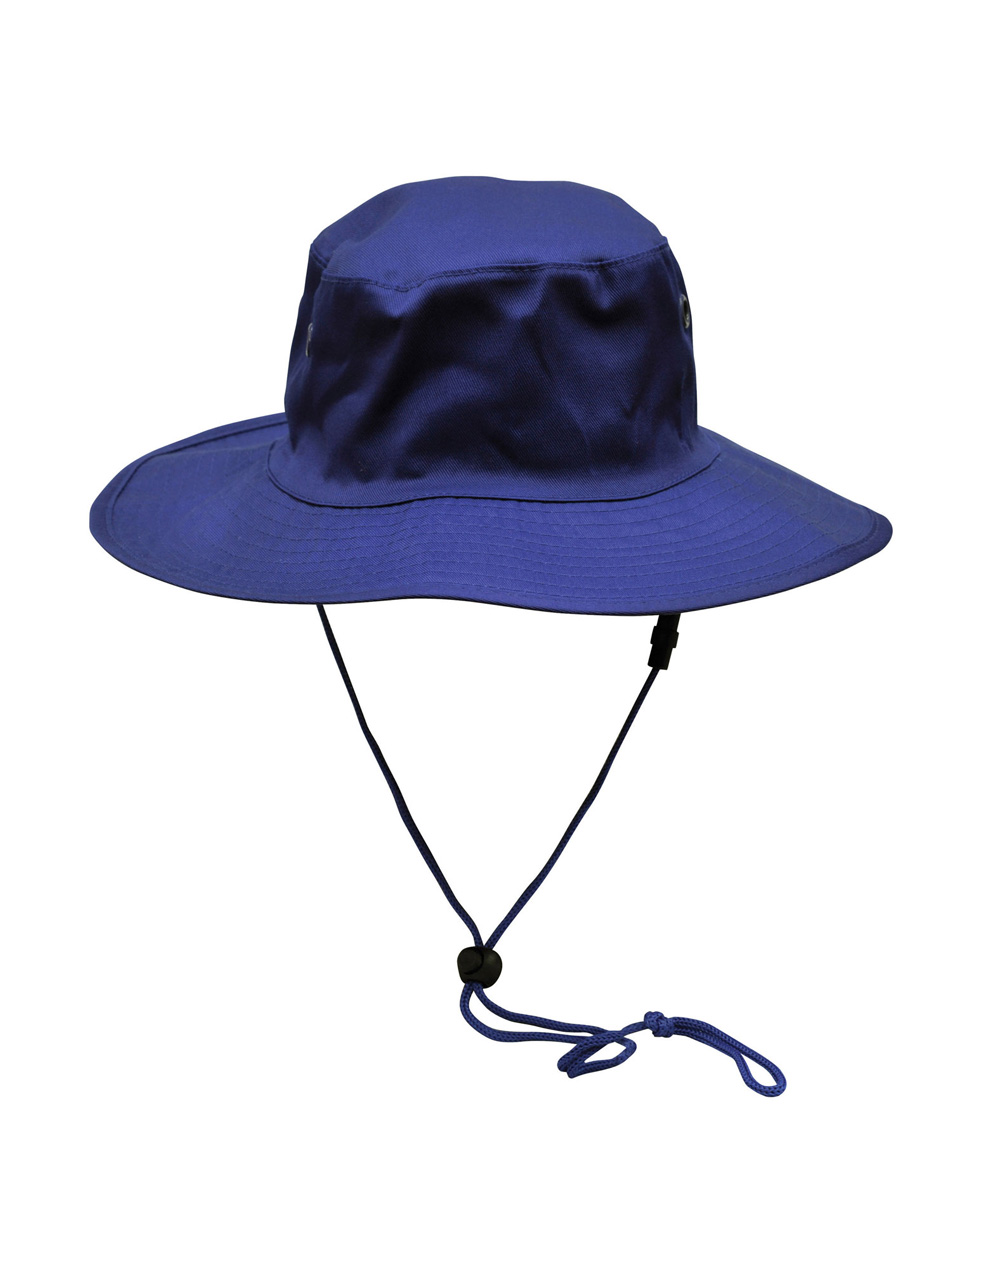 Surf hat with clip on chin strap - RJS Group Pty Ltd 33a523b50b3